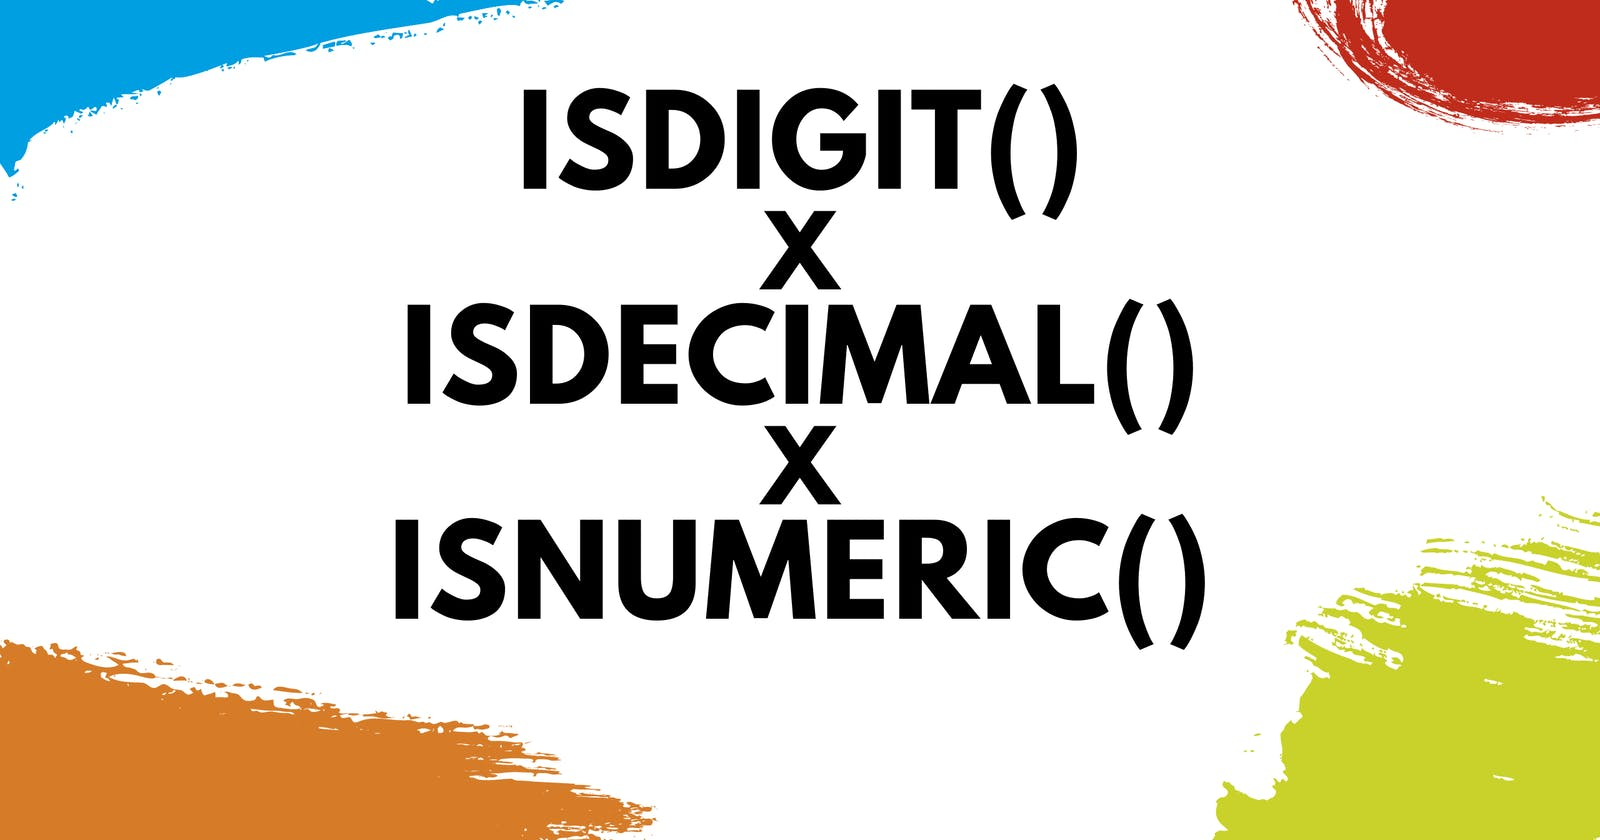 How to Choose Between isdigit(), isdecimal() and isnumeric() in Python